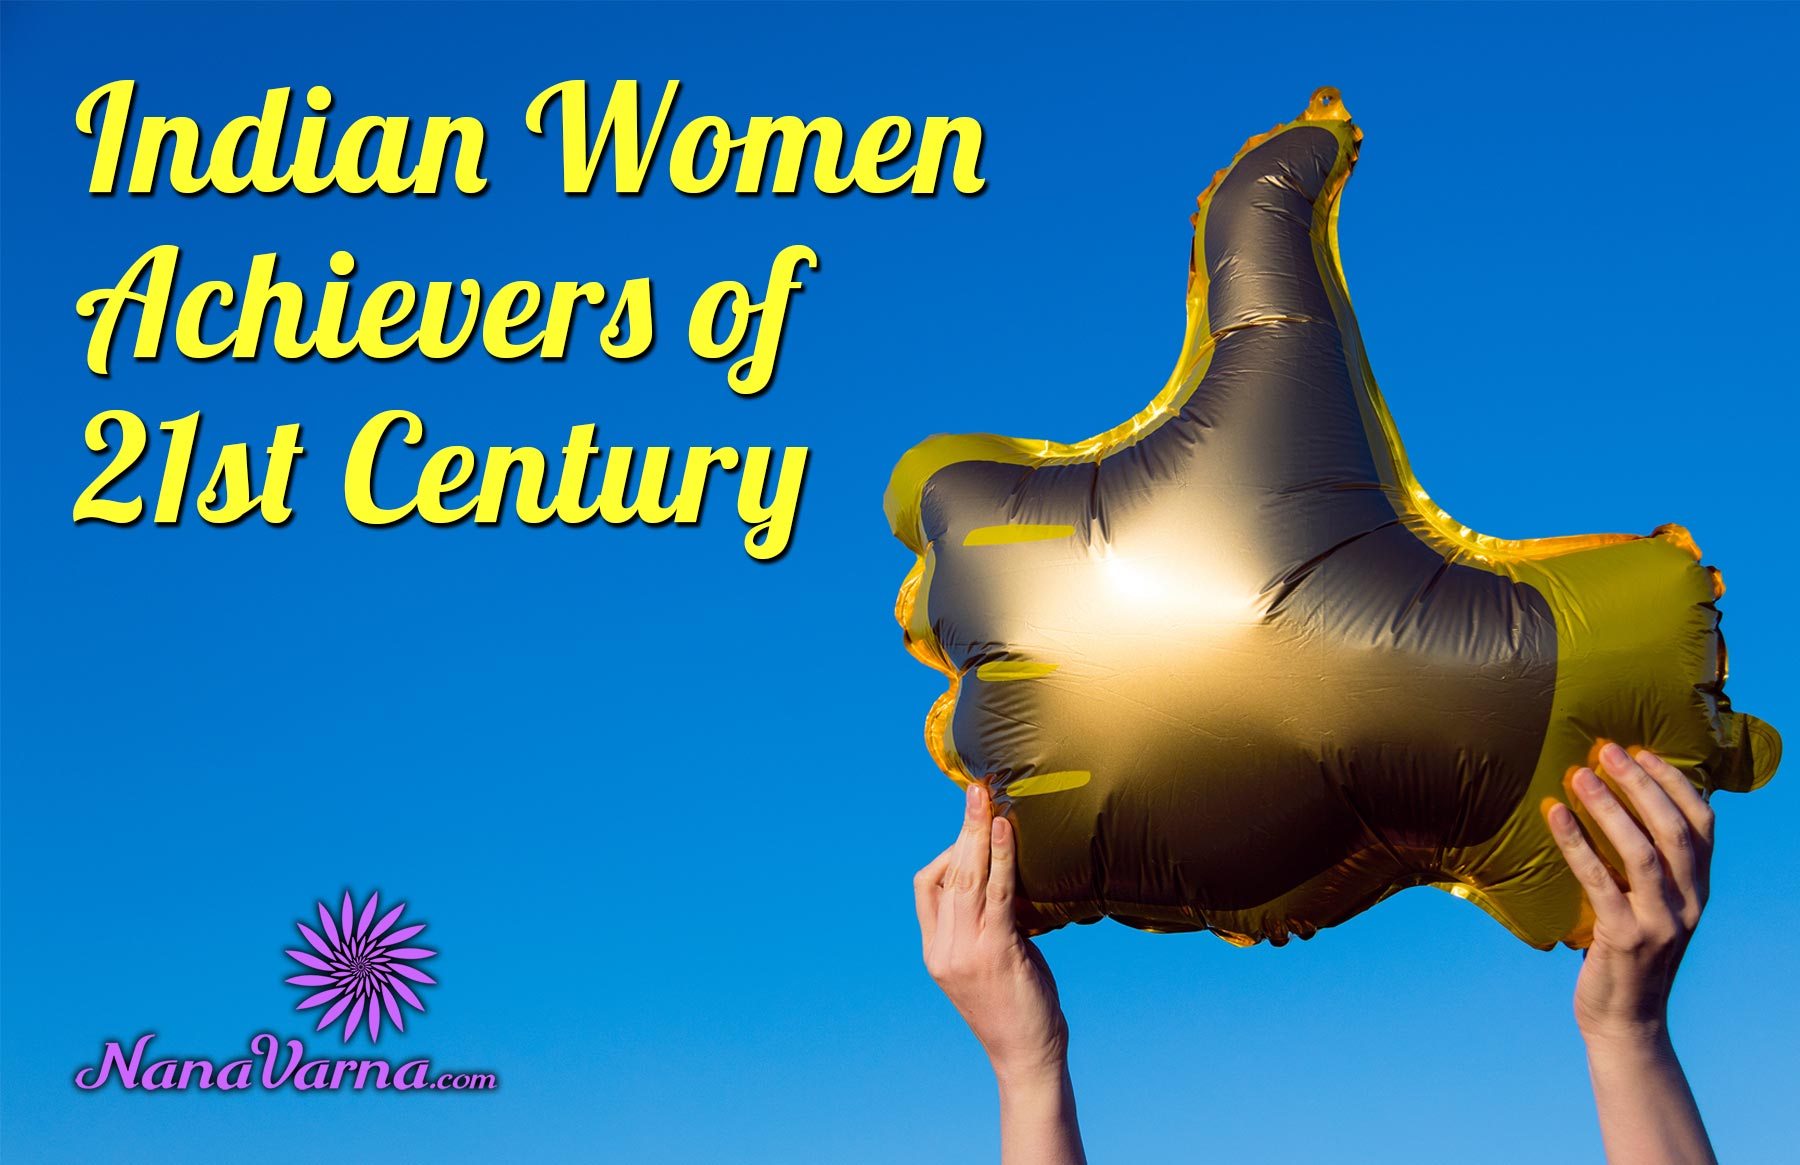 Indian Women Achievers